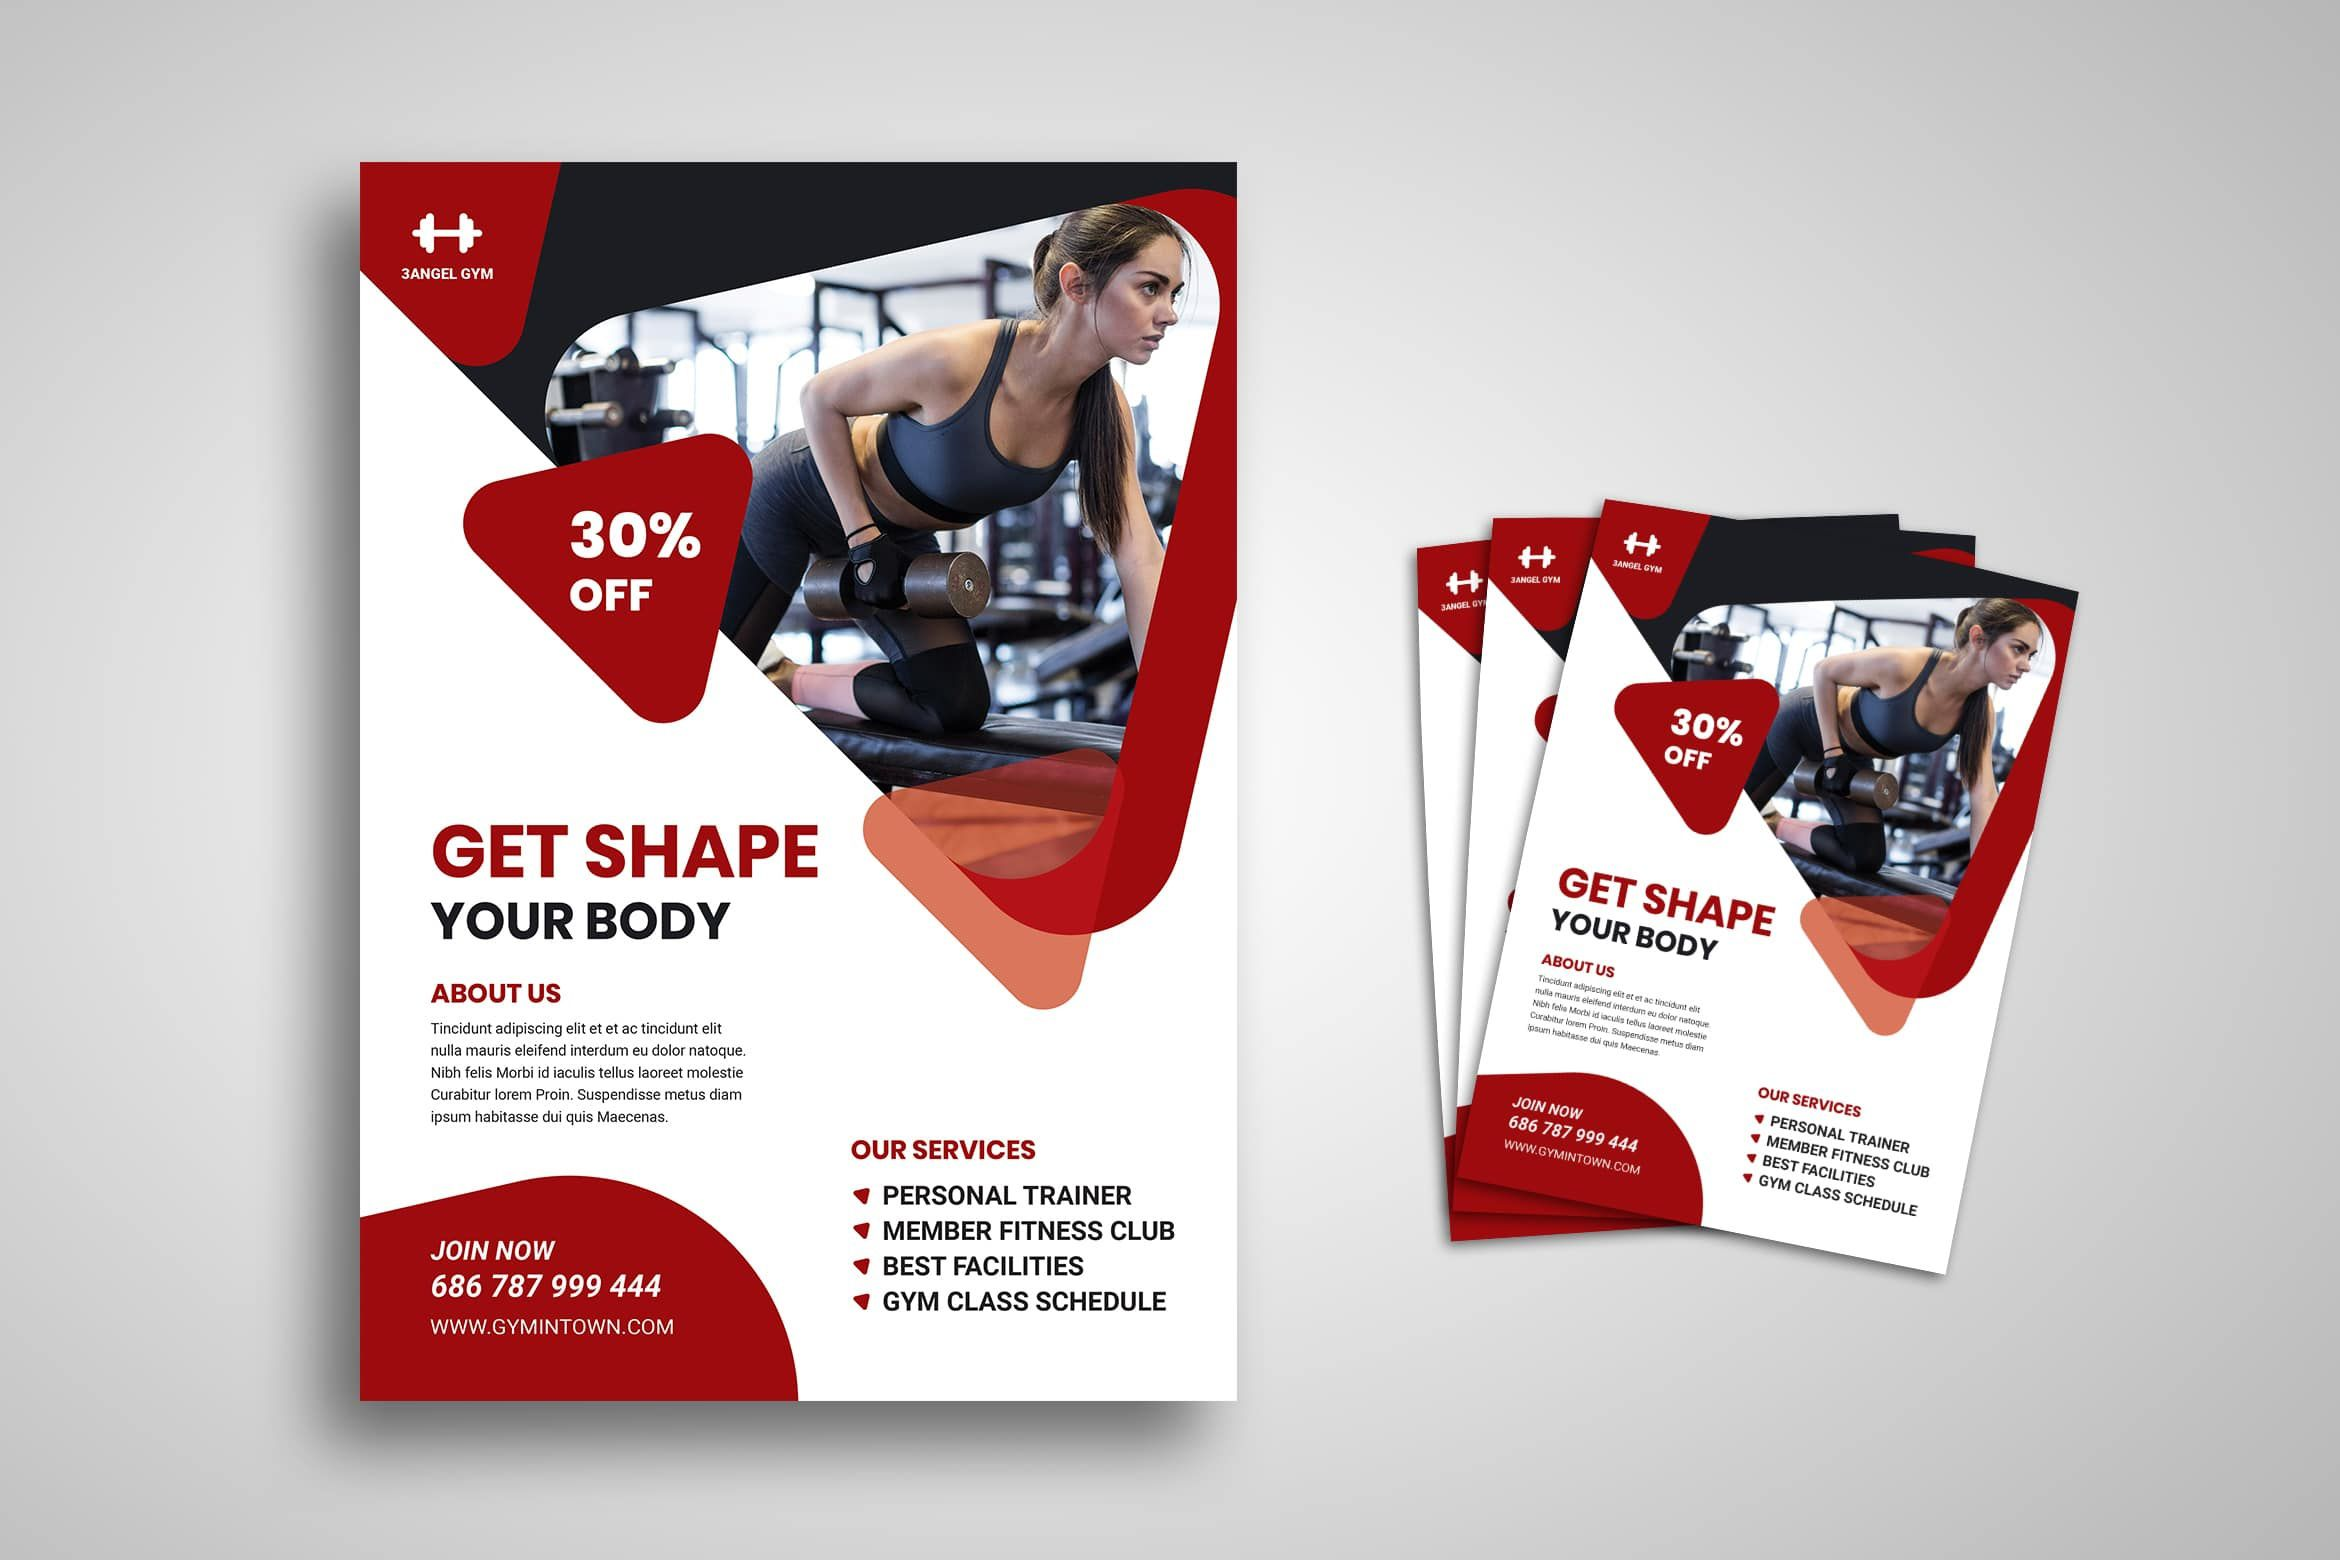 004 Frightening Personal Trainer Flyer Template High Def  Word PsdFull